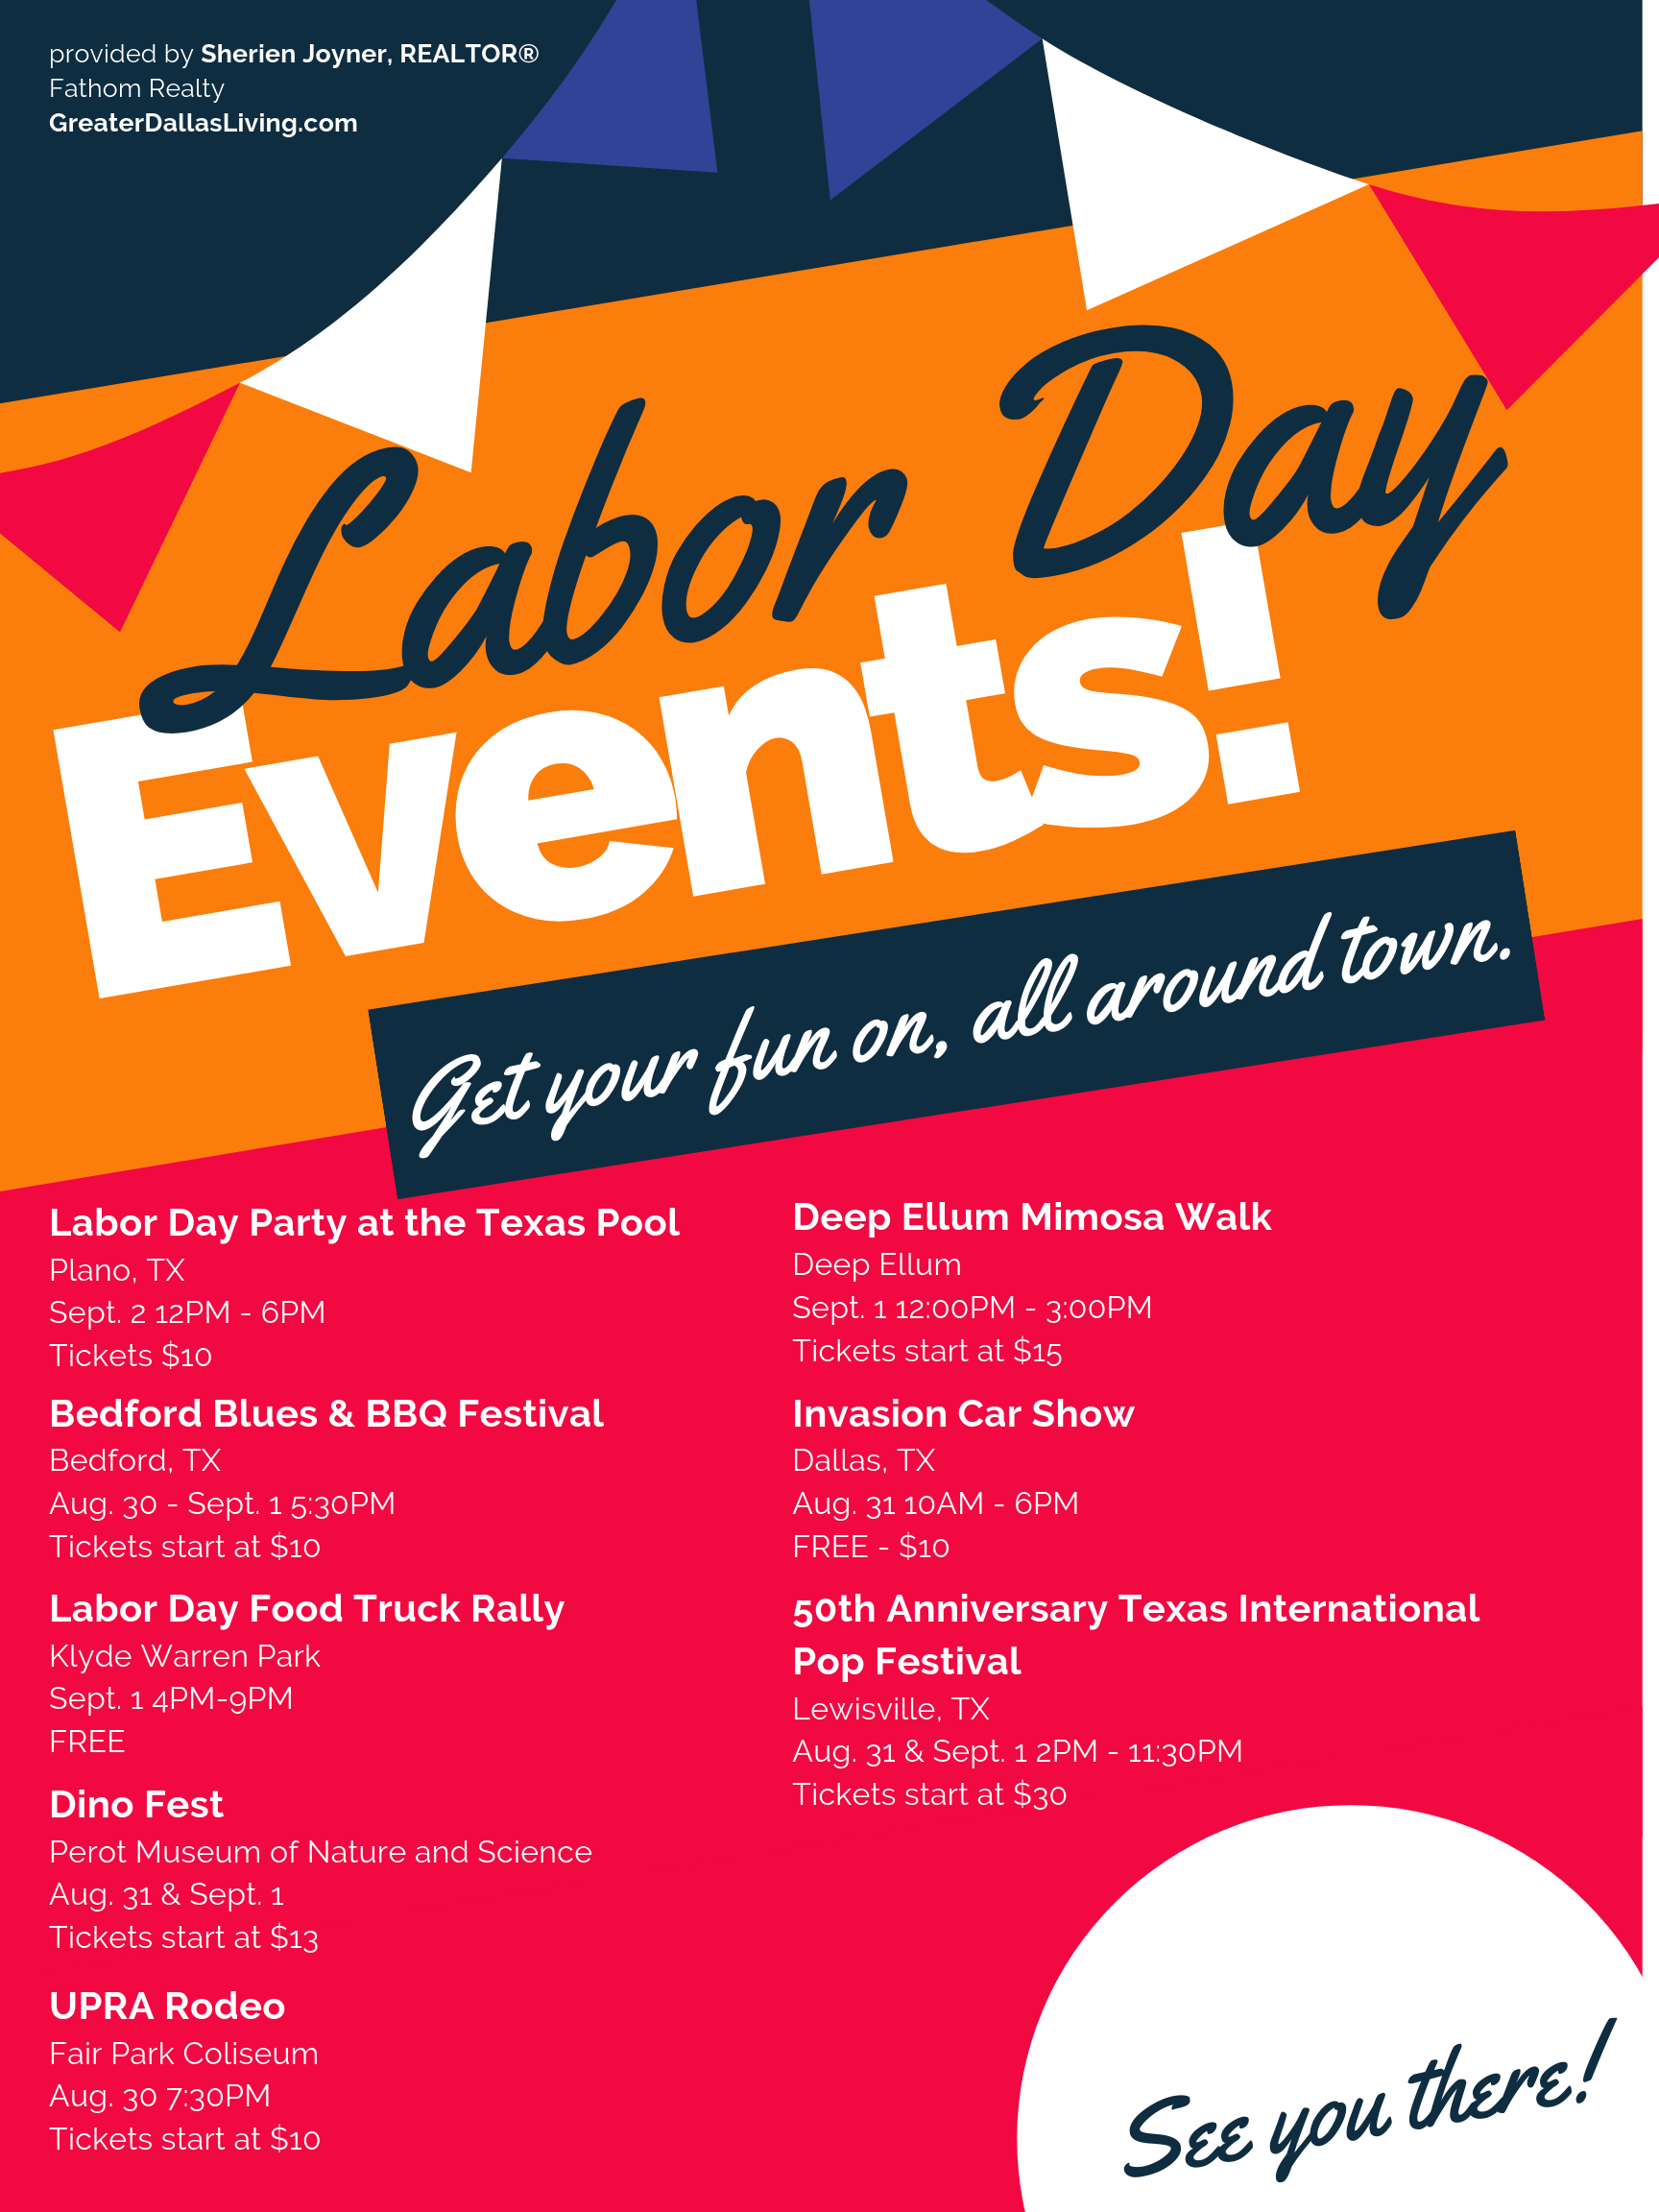 Labor Day Weekend 2019 Events in DFW